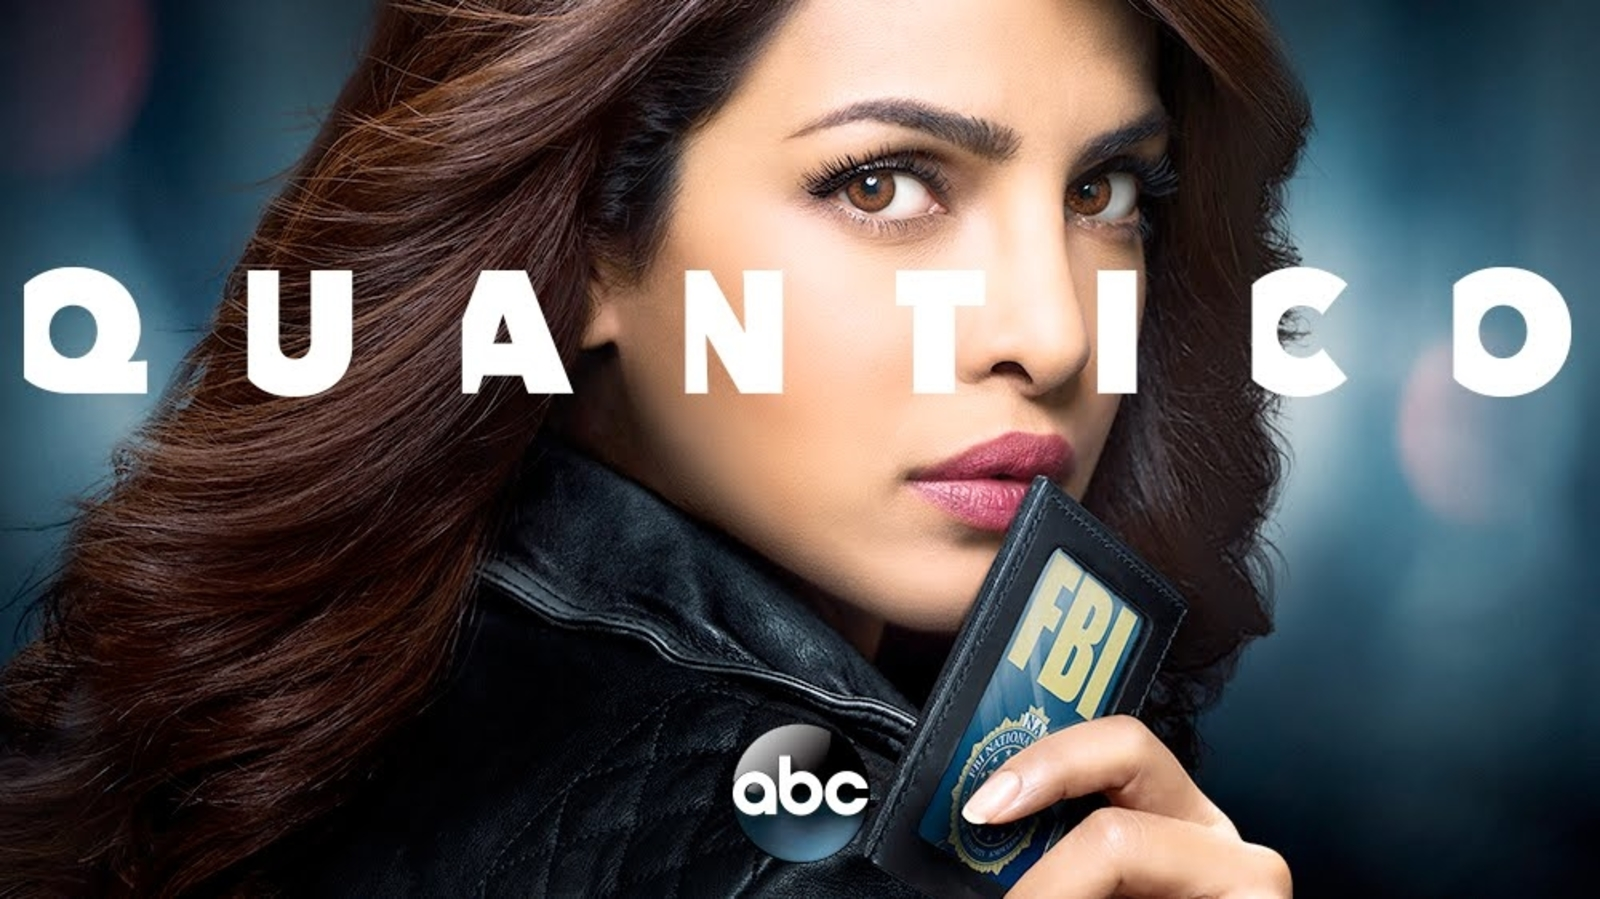 Photo of 15 Awesome Quantico Quotes from Season 1